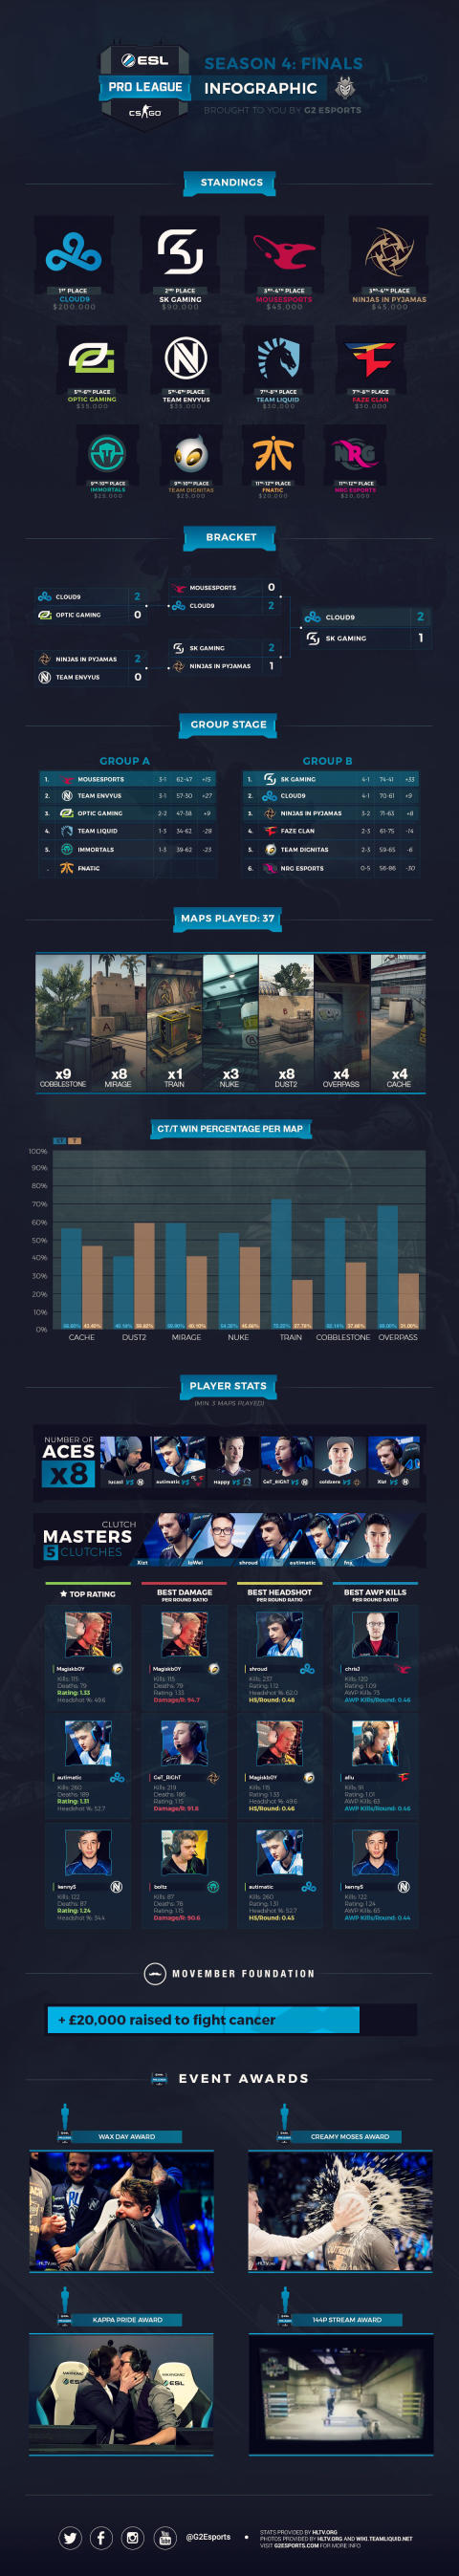 ESL Pro League Season 4 Infographic